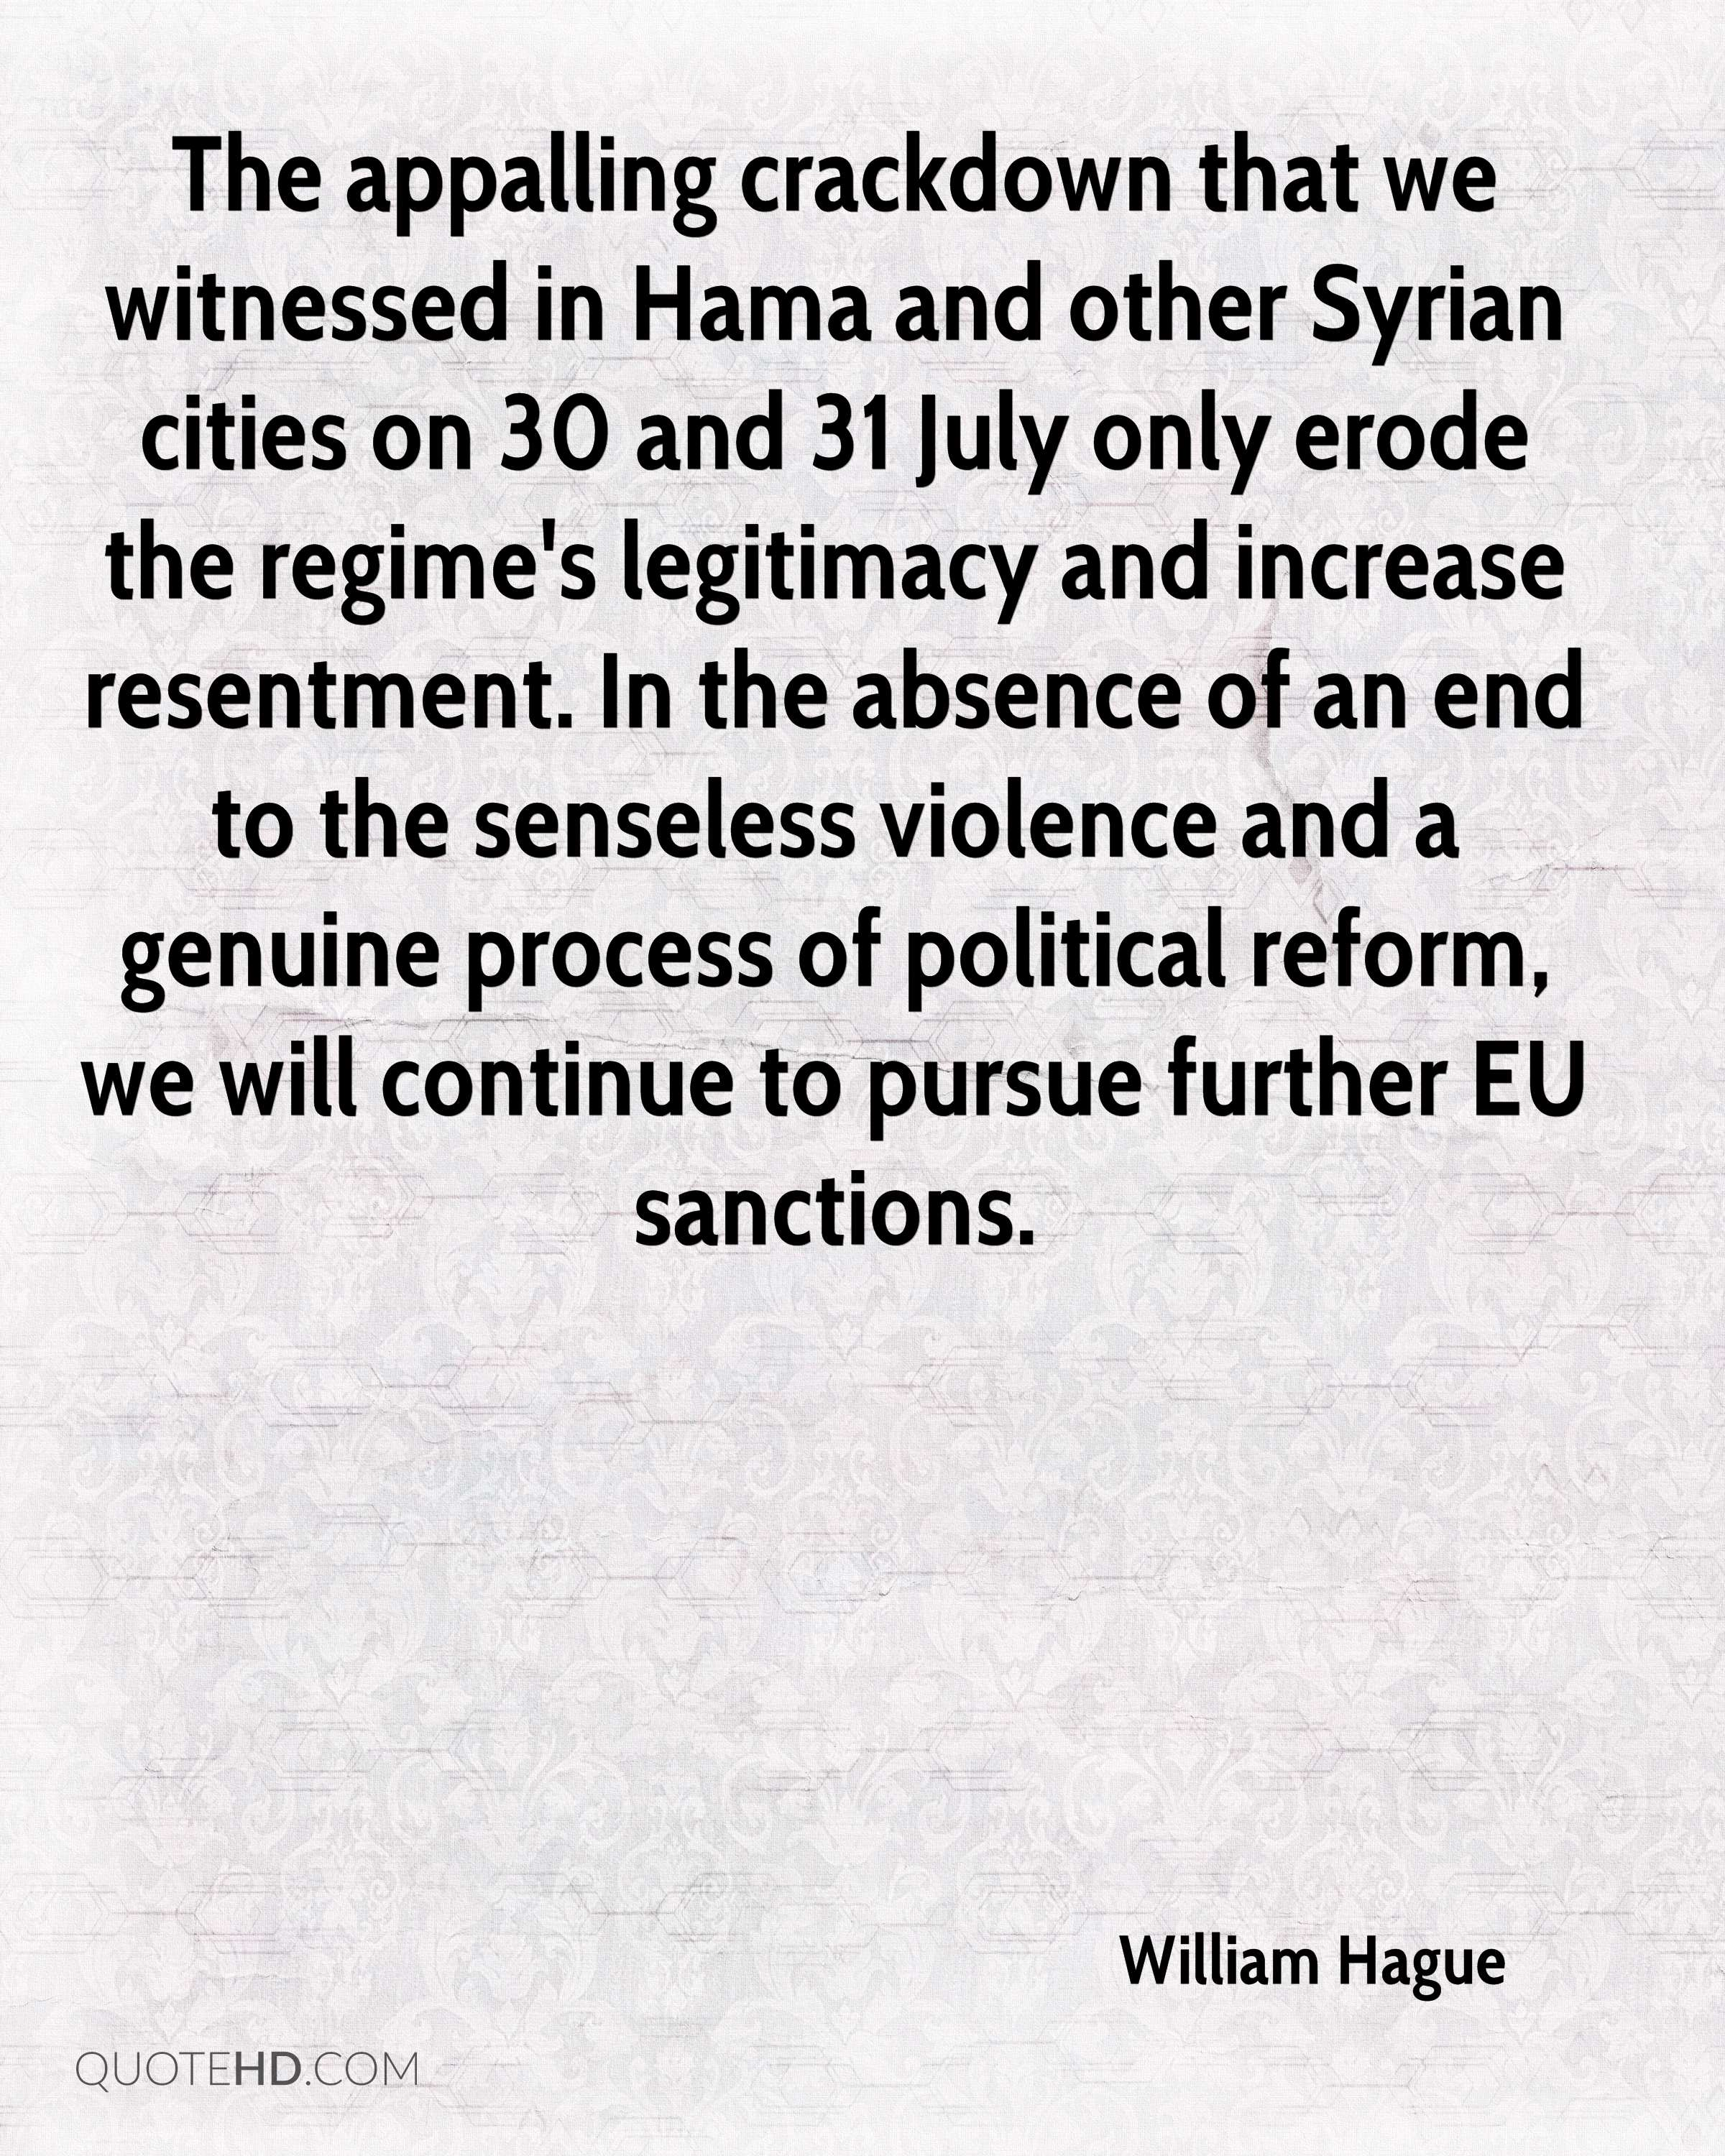 The appalling crackdown that we witnessed in Hama and other Syrian cities on 30 and 31 July only erode the regime's legitimacy and increase resentment. In the absence of an end to the senseless violence and a genuine process of political reform, we will continue to pursue further EU sanctions.